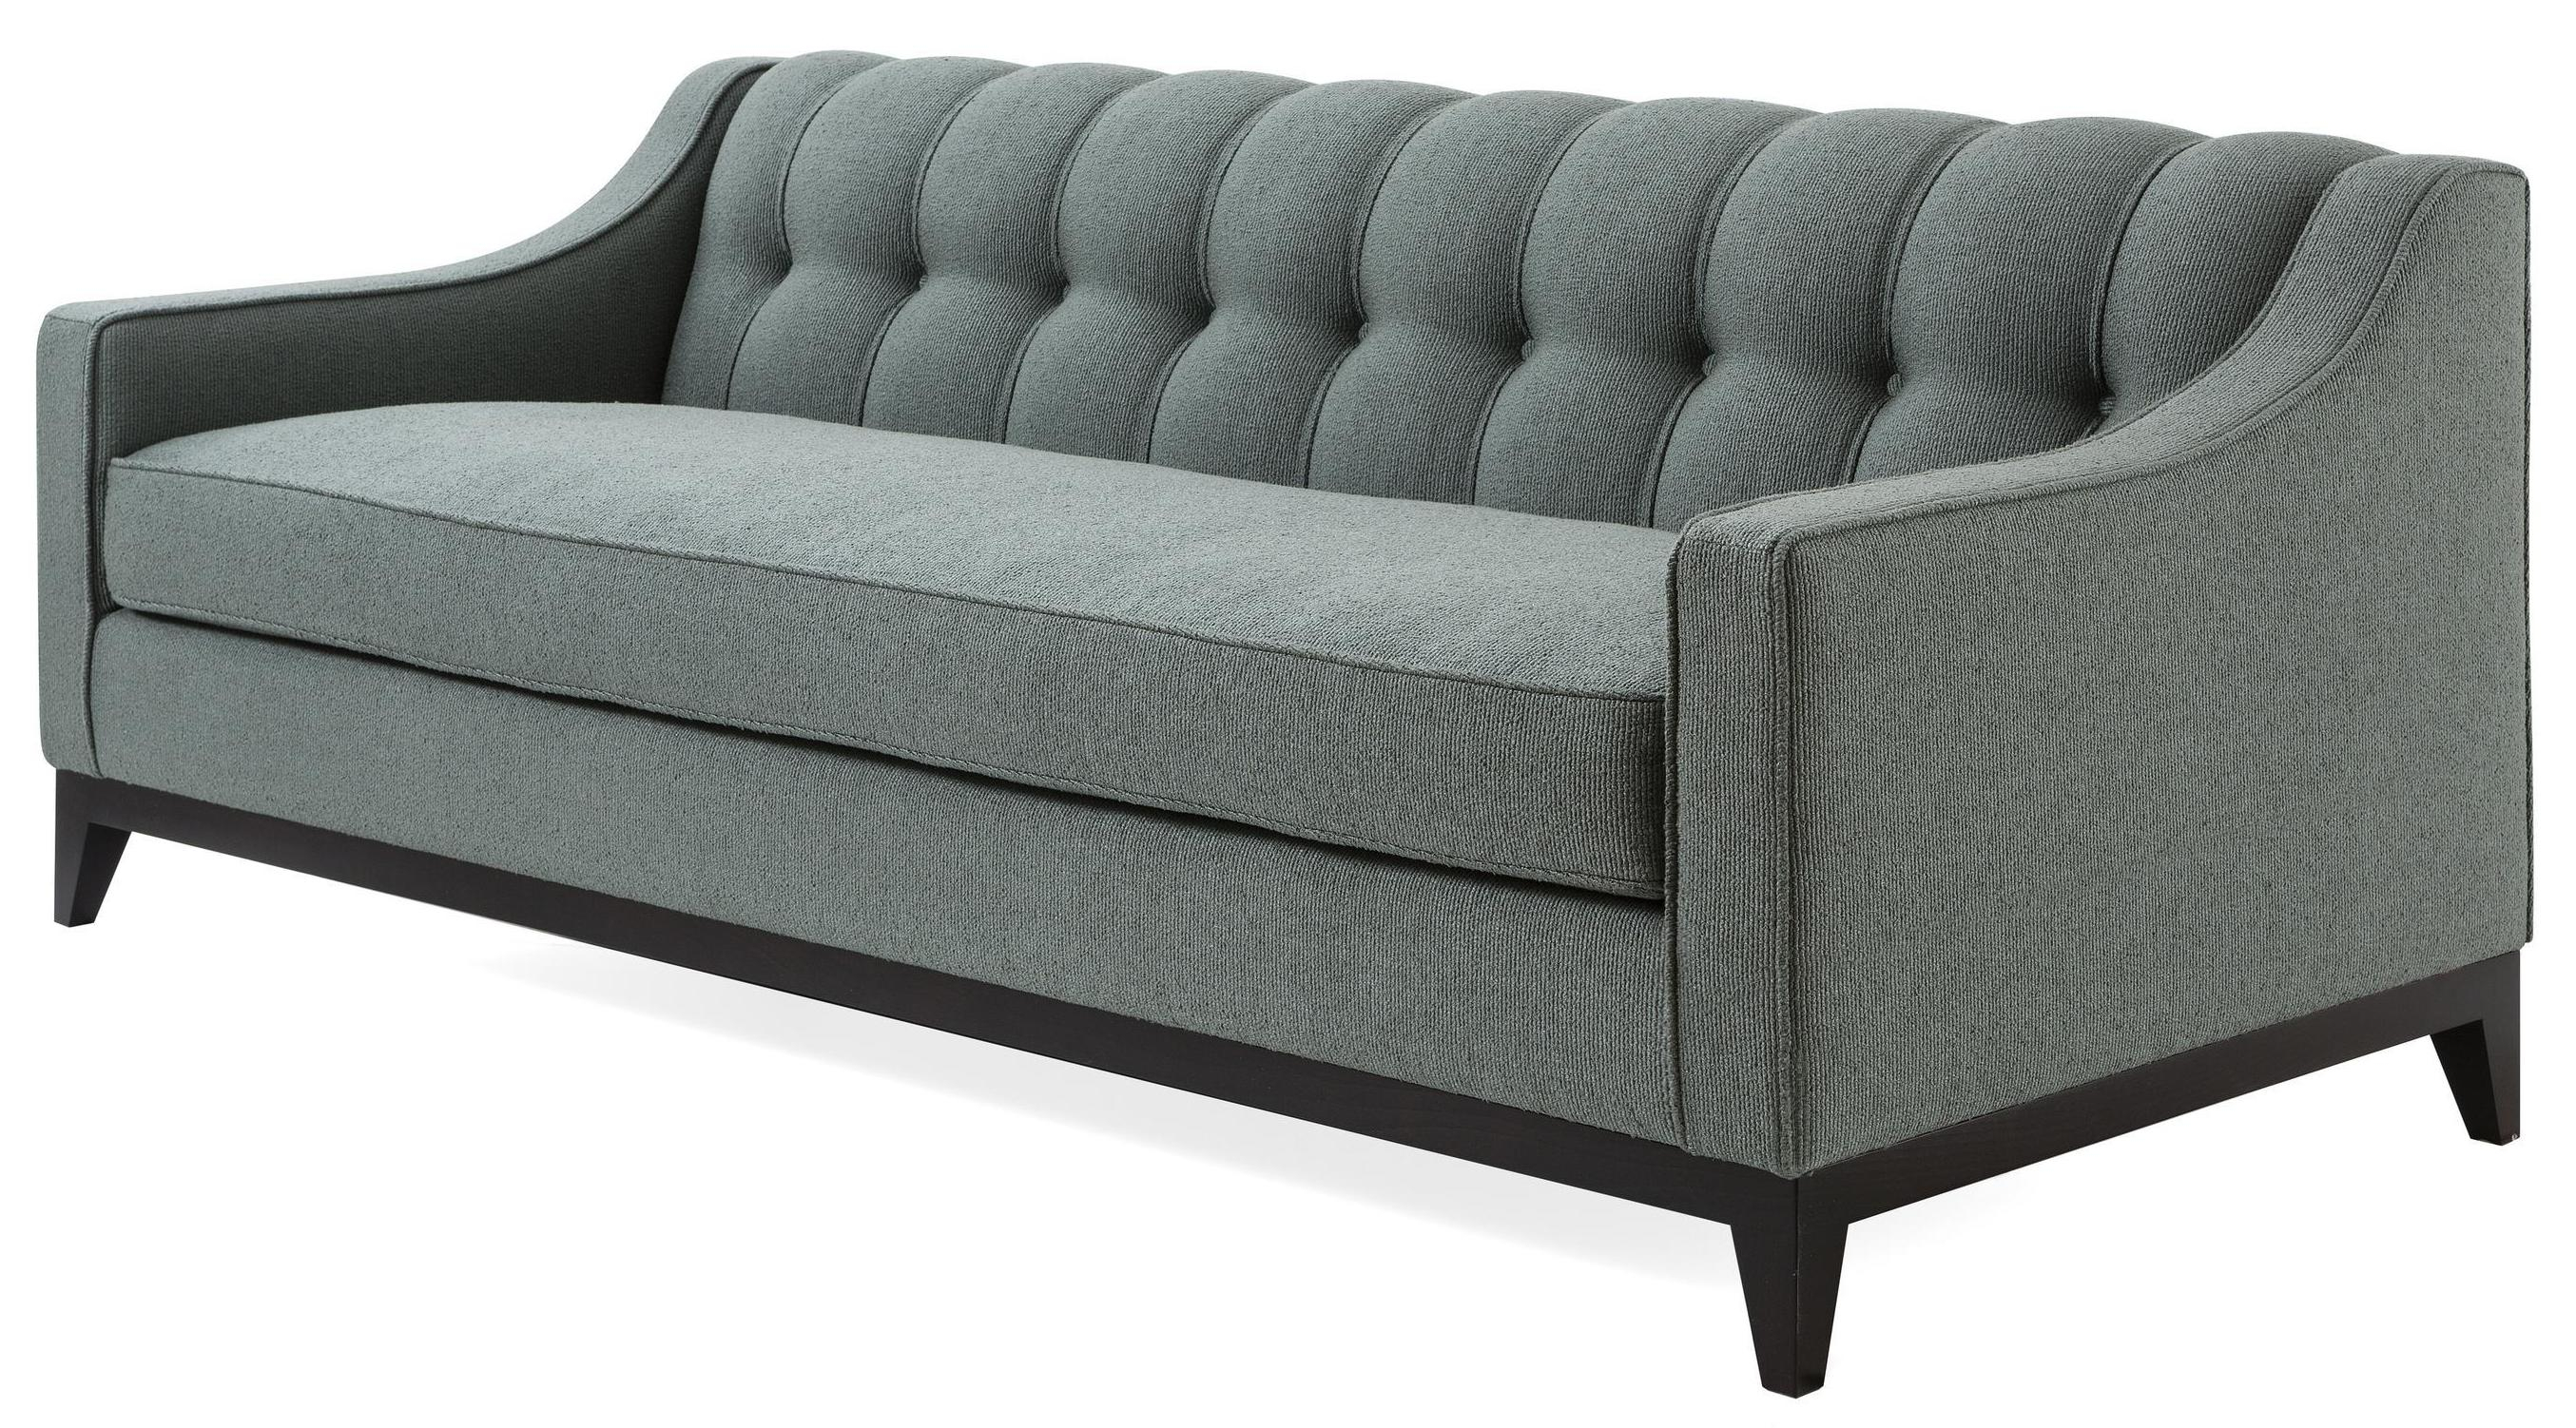 Milton Zi 3 Seater Sofabespoke Sofa London In 3 Seater For London Dark Grey Sofa Chairs (Image 15 of 20)